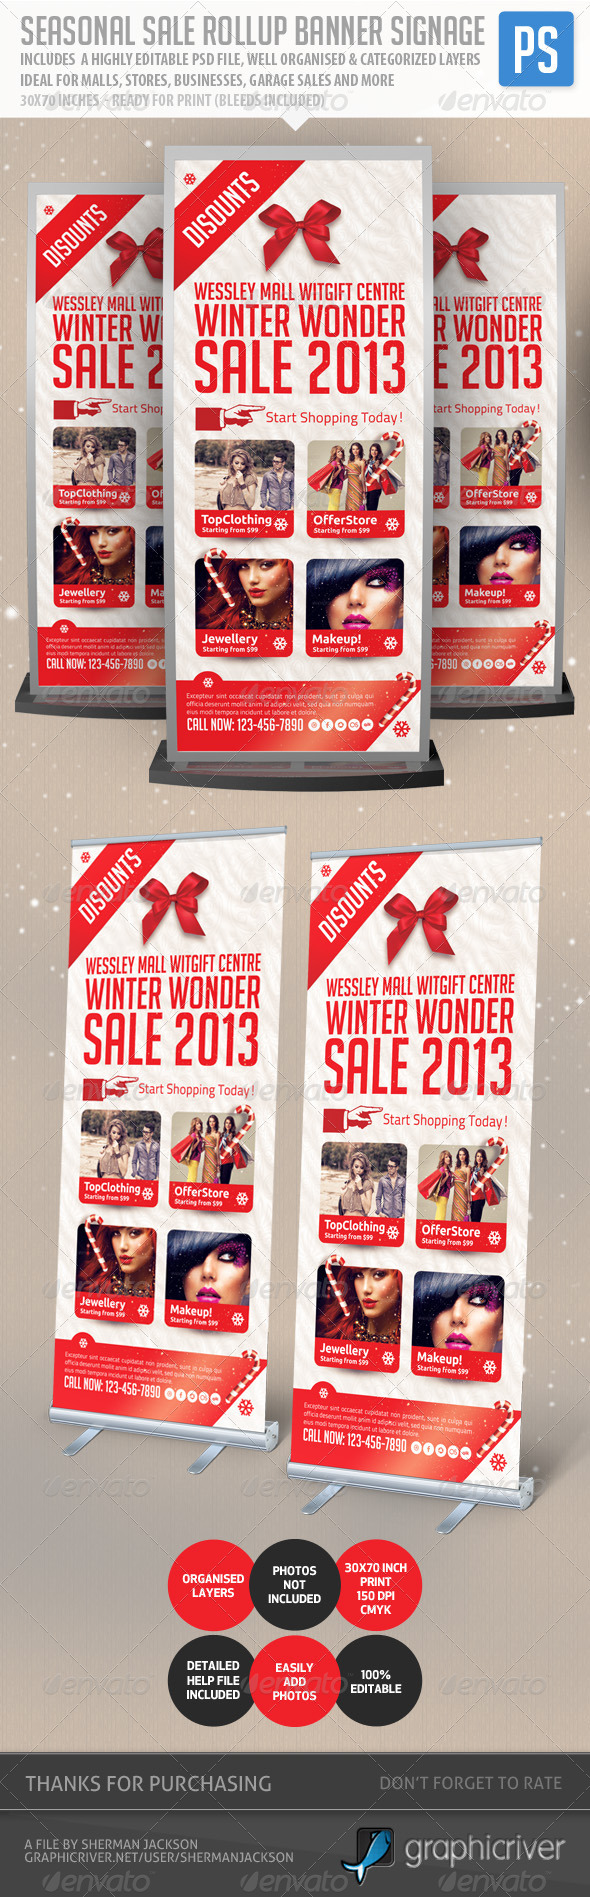 Seasonal Sale Rollup Banner Signage - Signage Print Templates